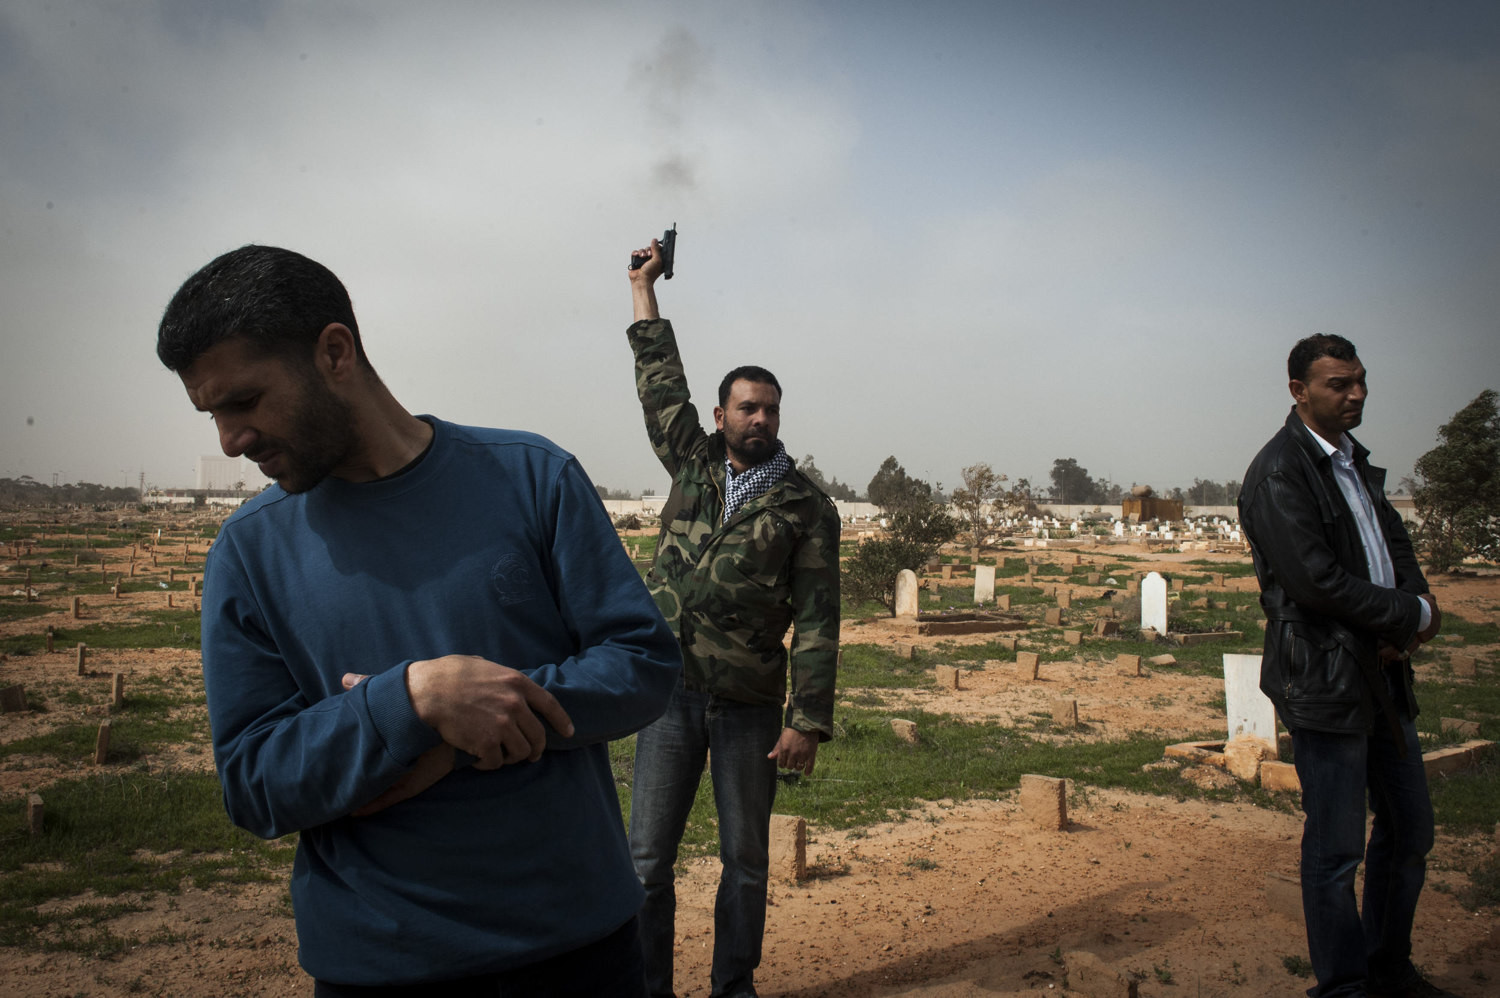 A man fires off a gun into the air to mourn. Men attend a mass burial at Benghazi Cemetery of seven men killed in an armory explosion the night before. It's not clear whether the armory exploded due to airstrikes or error by the soldiers.